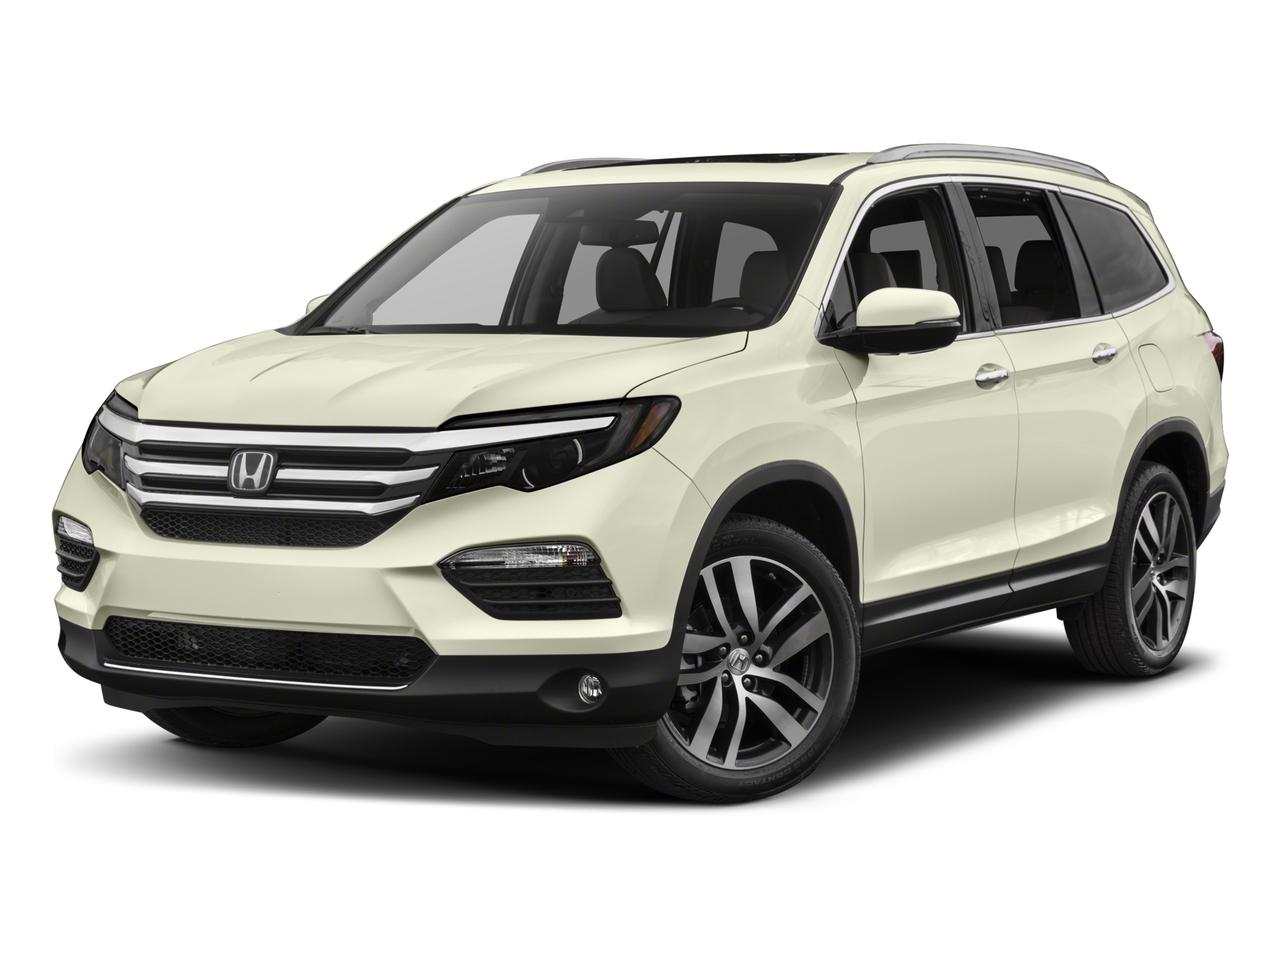 2017 Honda Pilot Vehicle Photo in Pittsburg, CA 94565